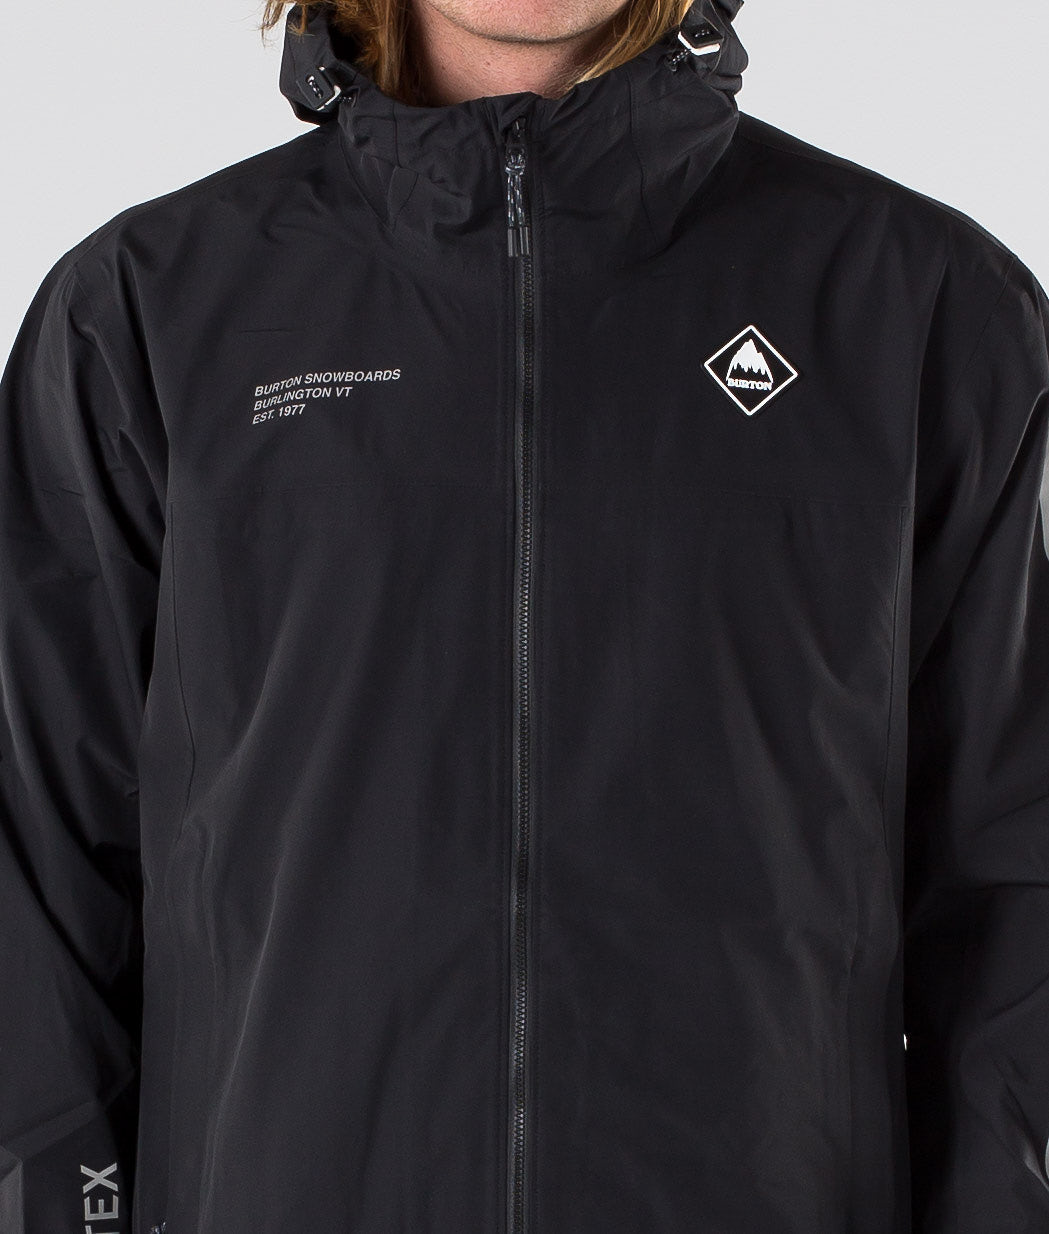 Buy Gore Tex Packrite Slim Snowboard Jacket from Burton at Ridestore.com - Always free shipping, free returns and 30 days money back guarantee